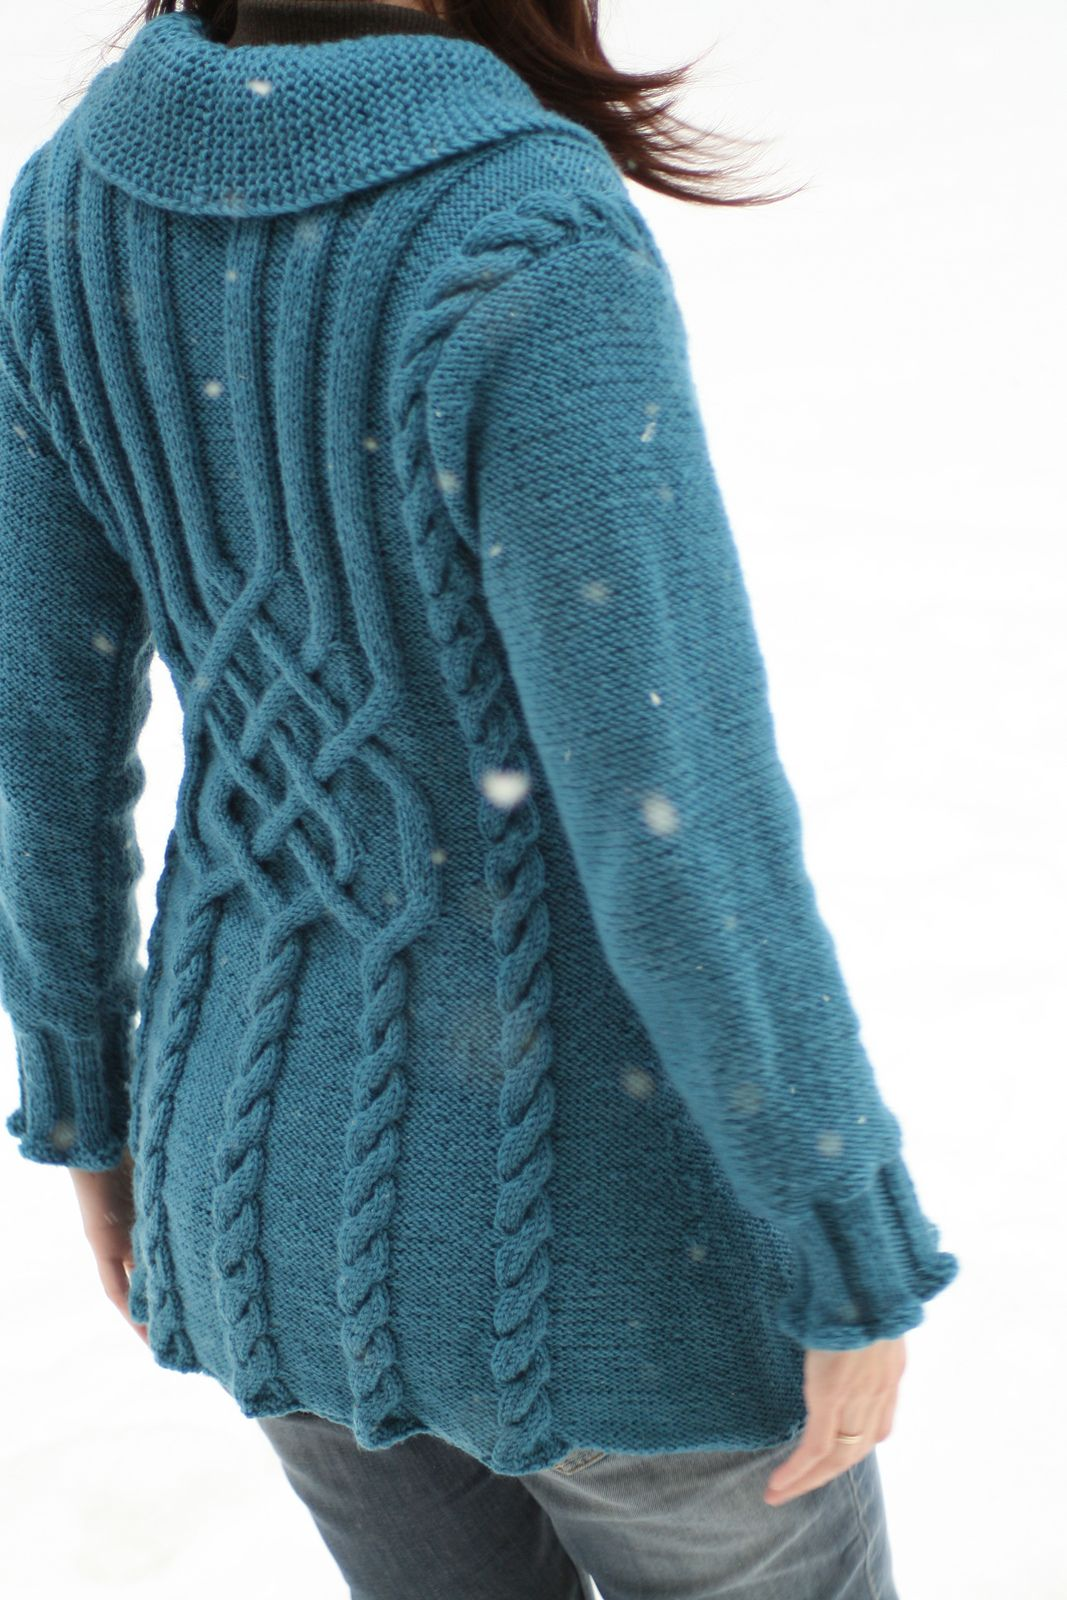 Drops Knitting Patterns : Norwegian Knitting on Pinterest Fair Isle Chart, Norwegian Knitting Designs...